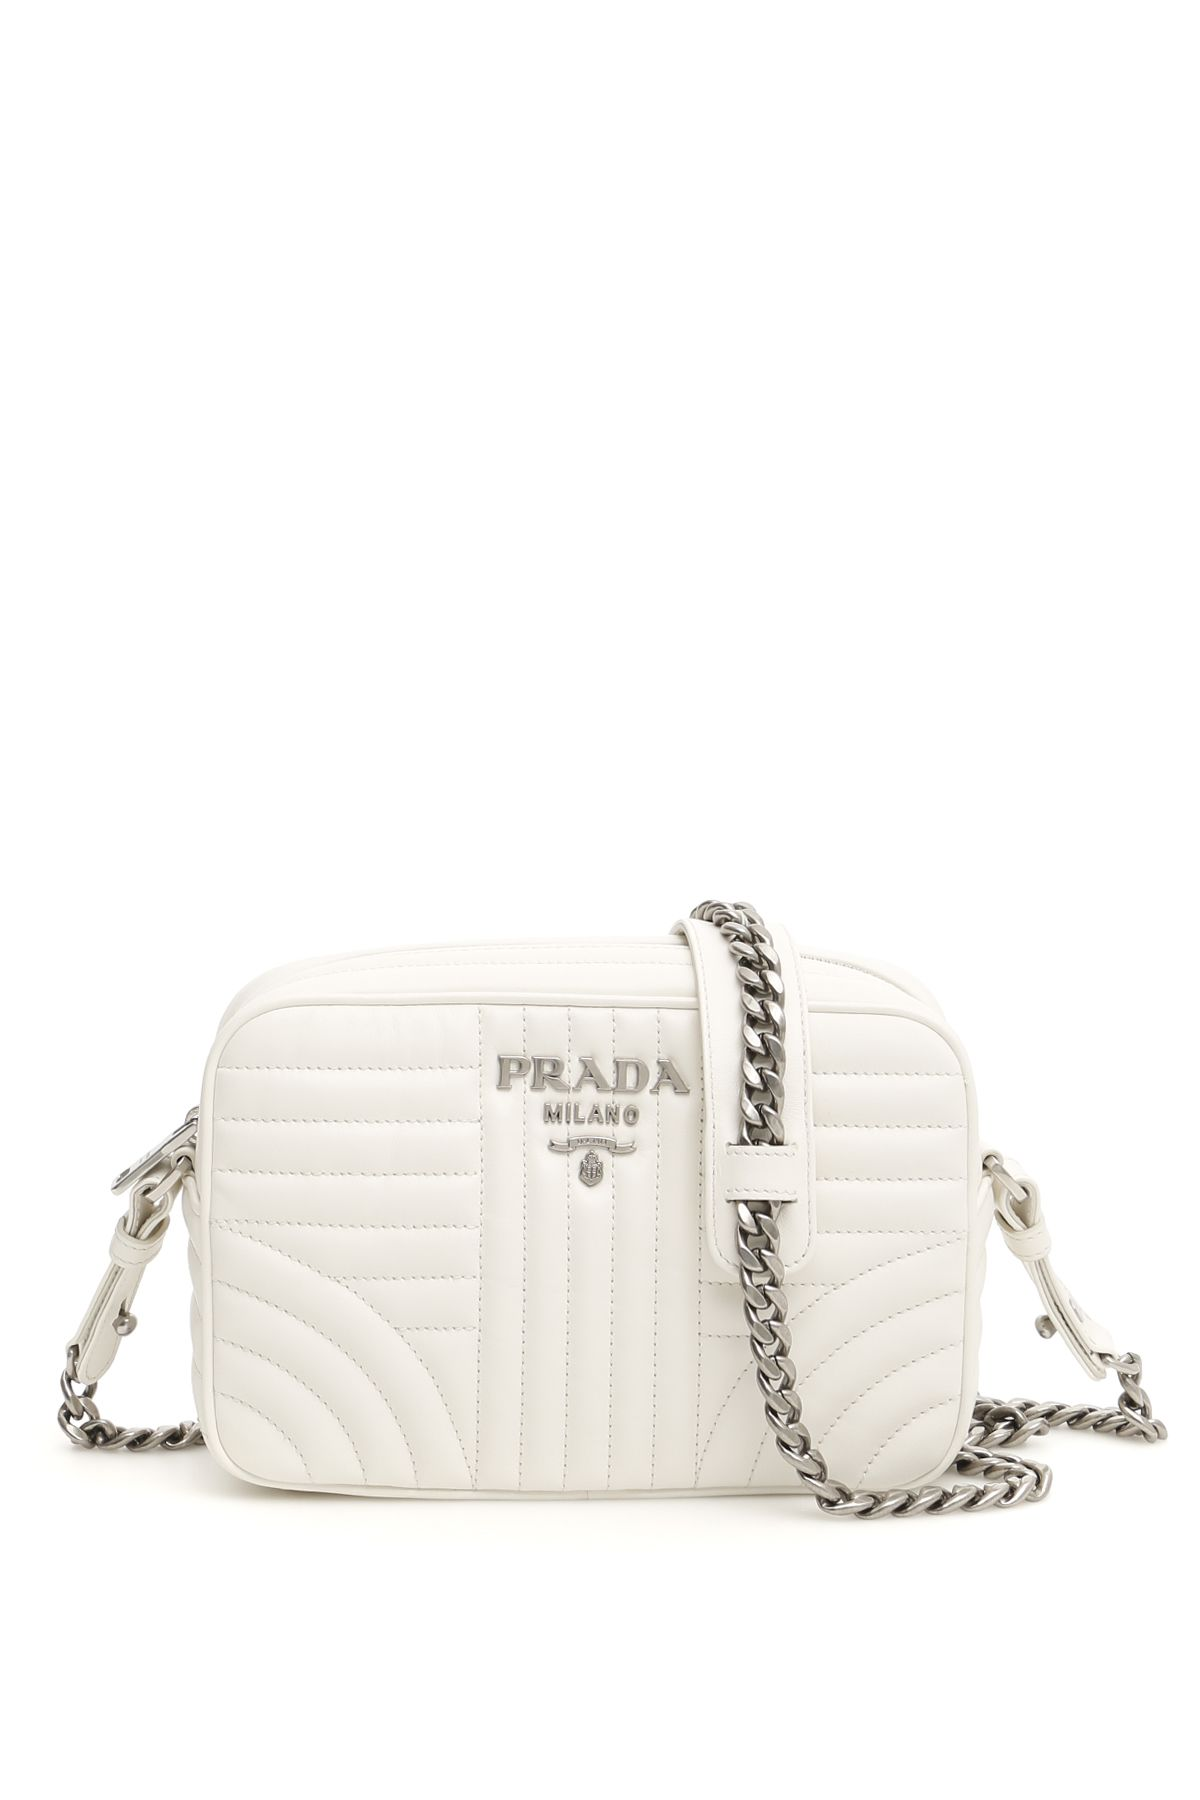 956195edb9 Prada Diagramme Crossbody Bag In Bianco 2